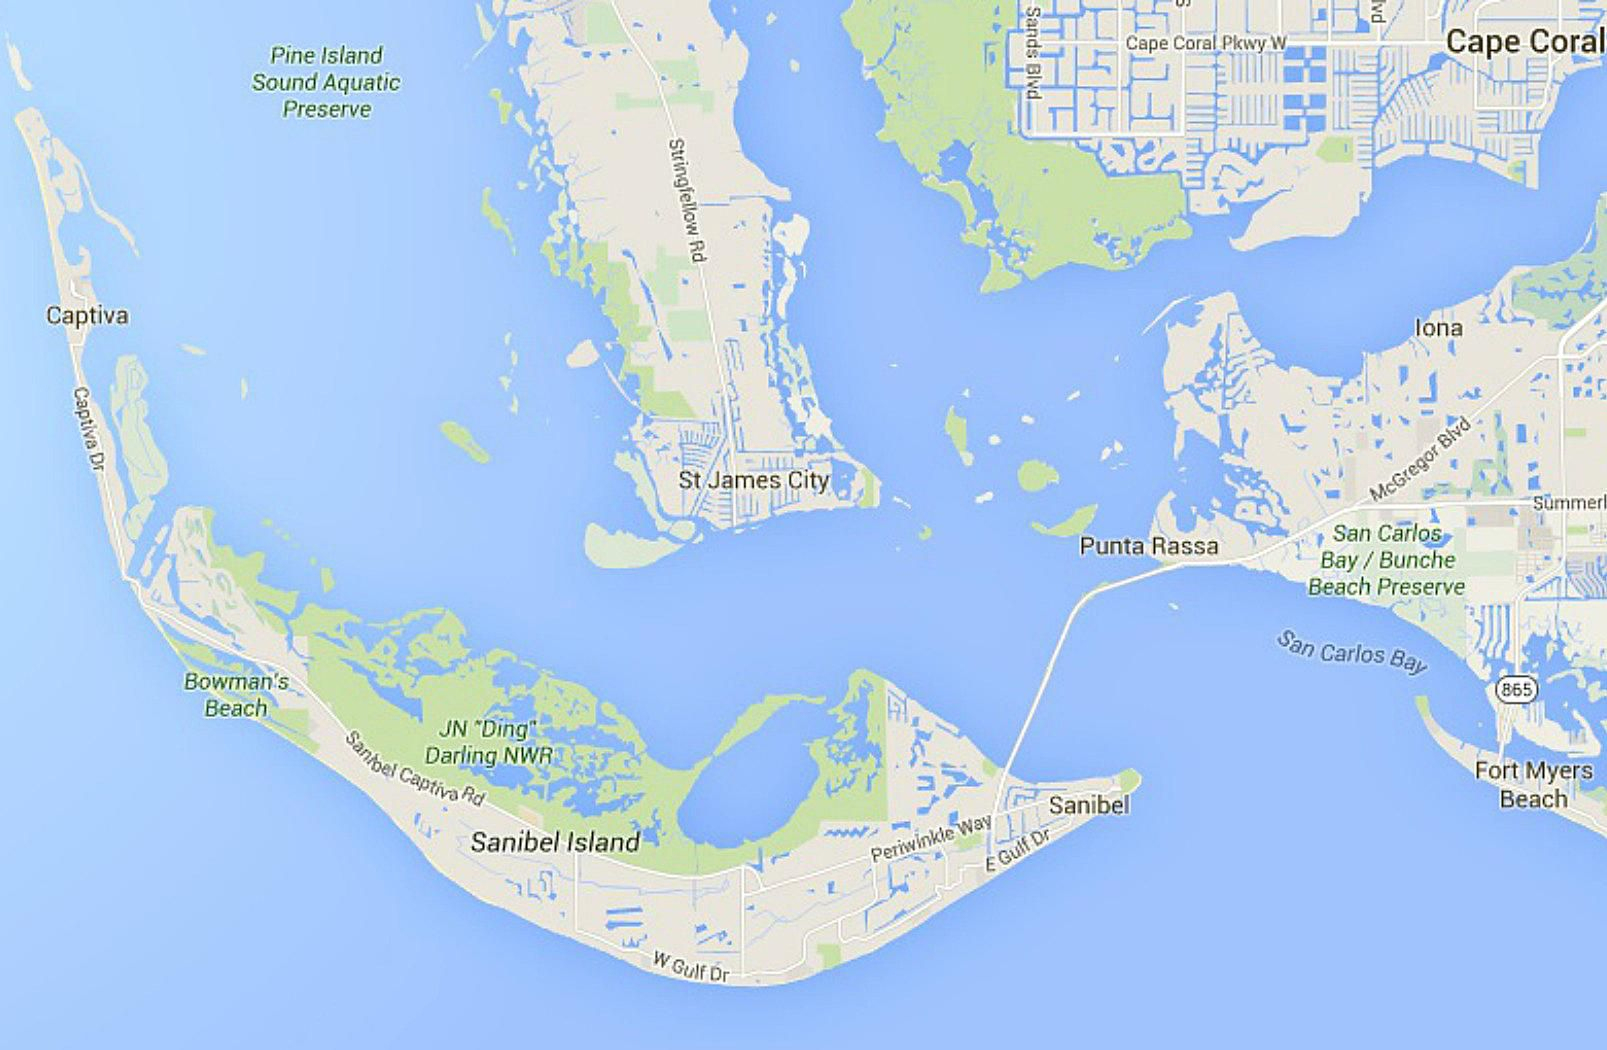 Maps Of Florida: Orlando, Tampa, Miami, Keys, And More - Map Of Florida Beaches On The Gulf